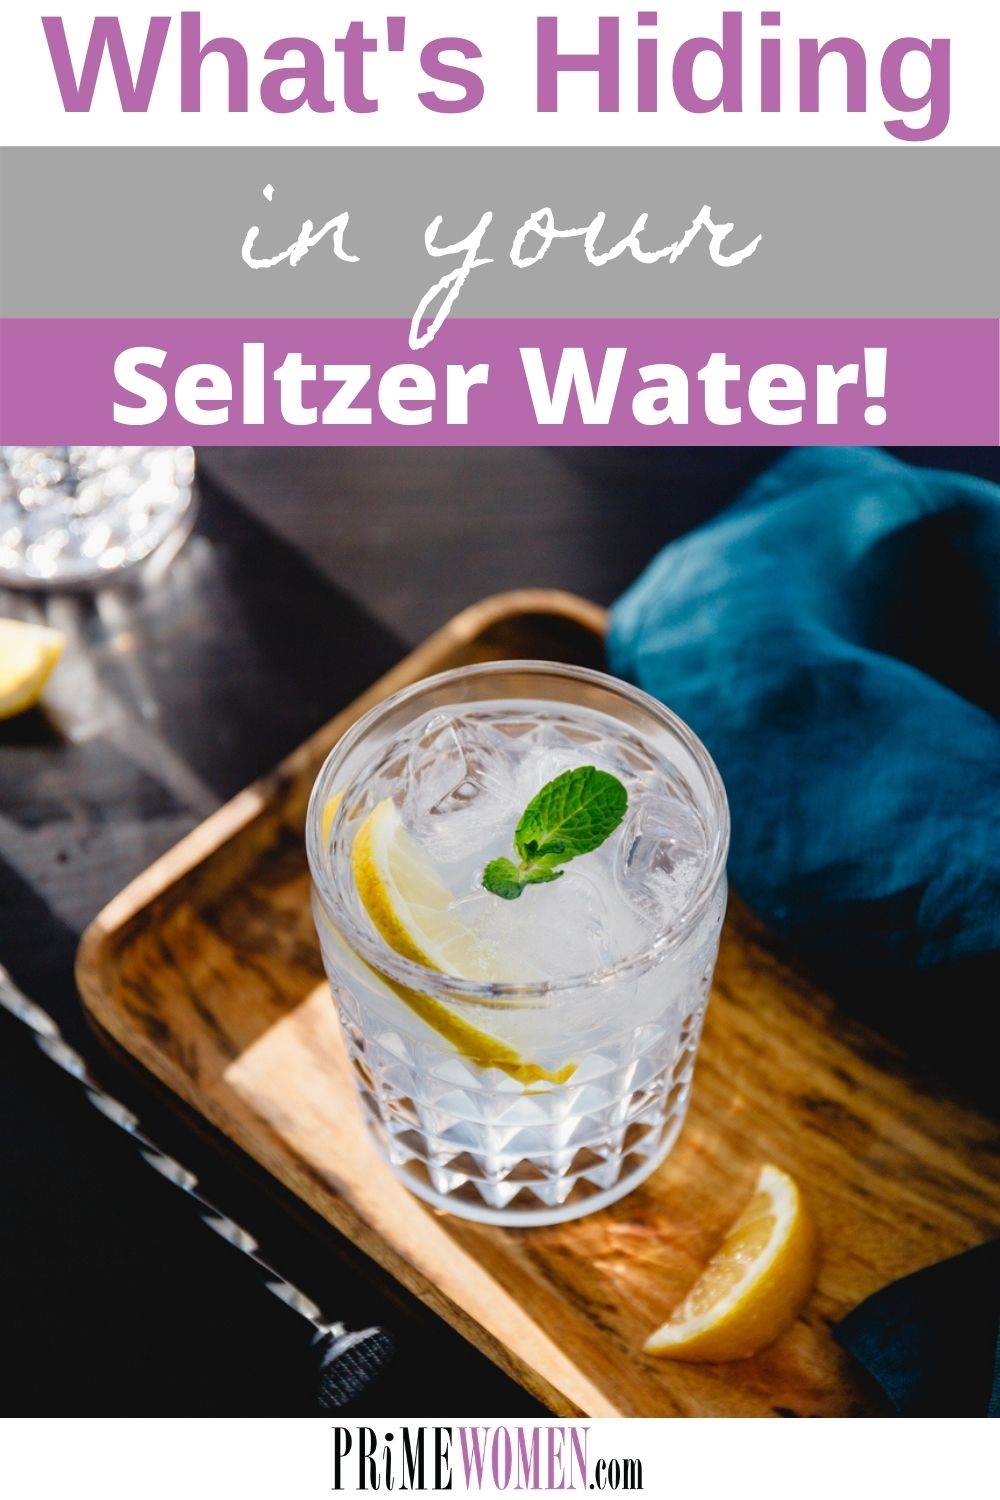 What's hiding in your seltzer water?